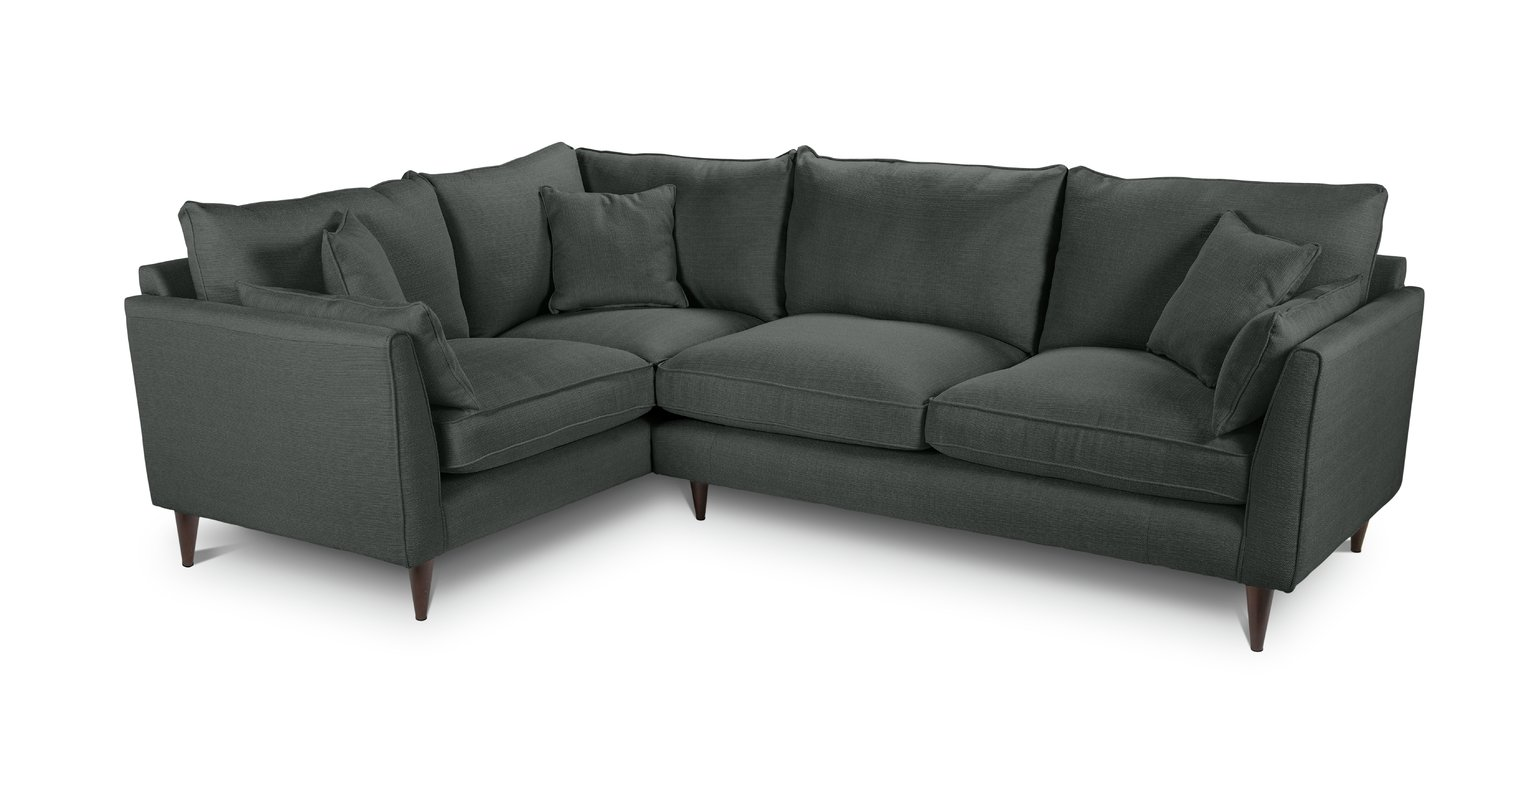 Argos Home Hector Left Corner Fabric Sofa - Charcoal Linen